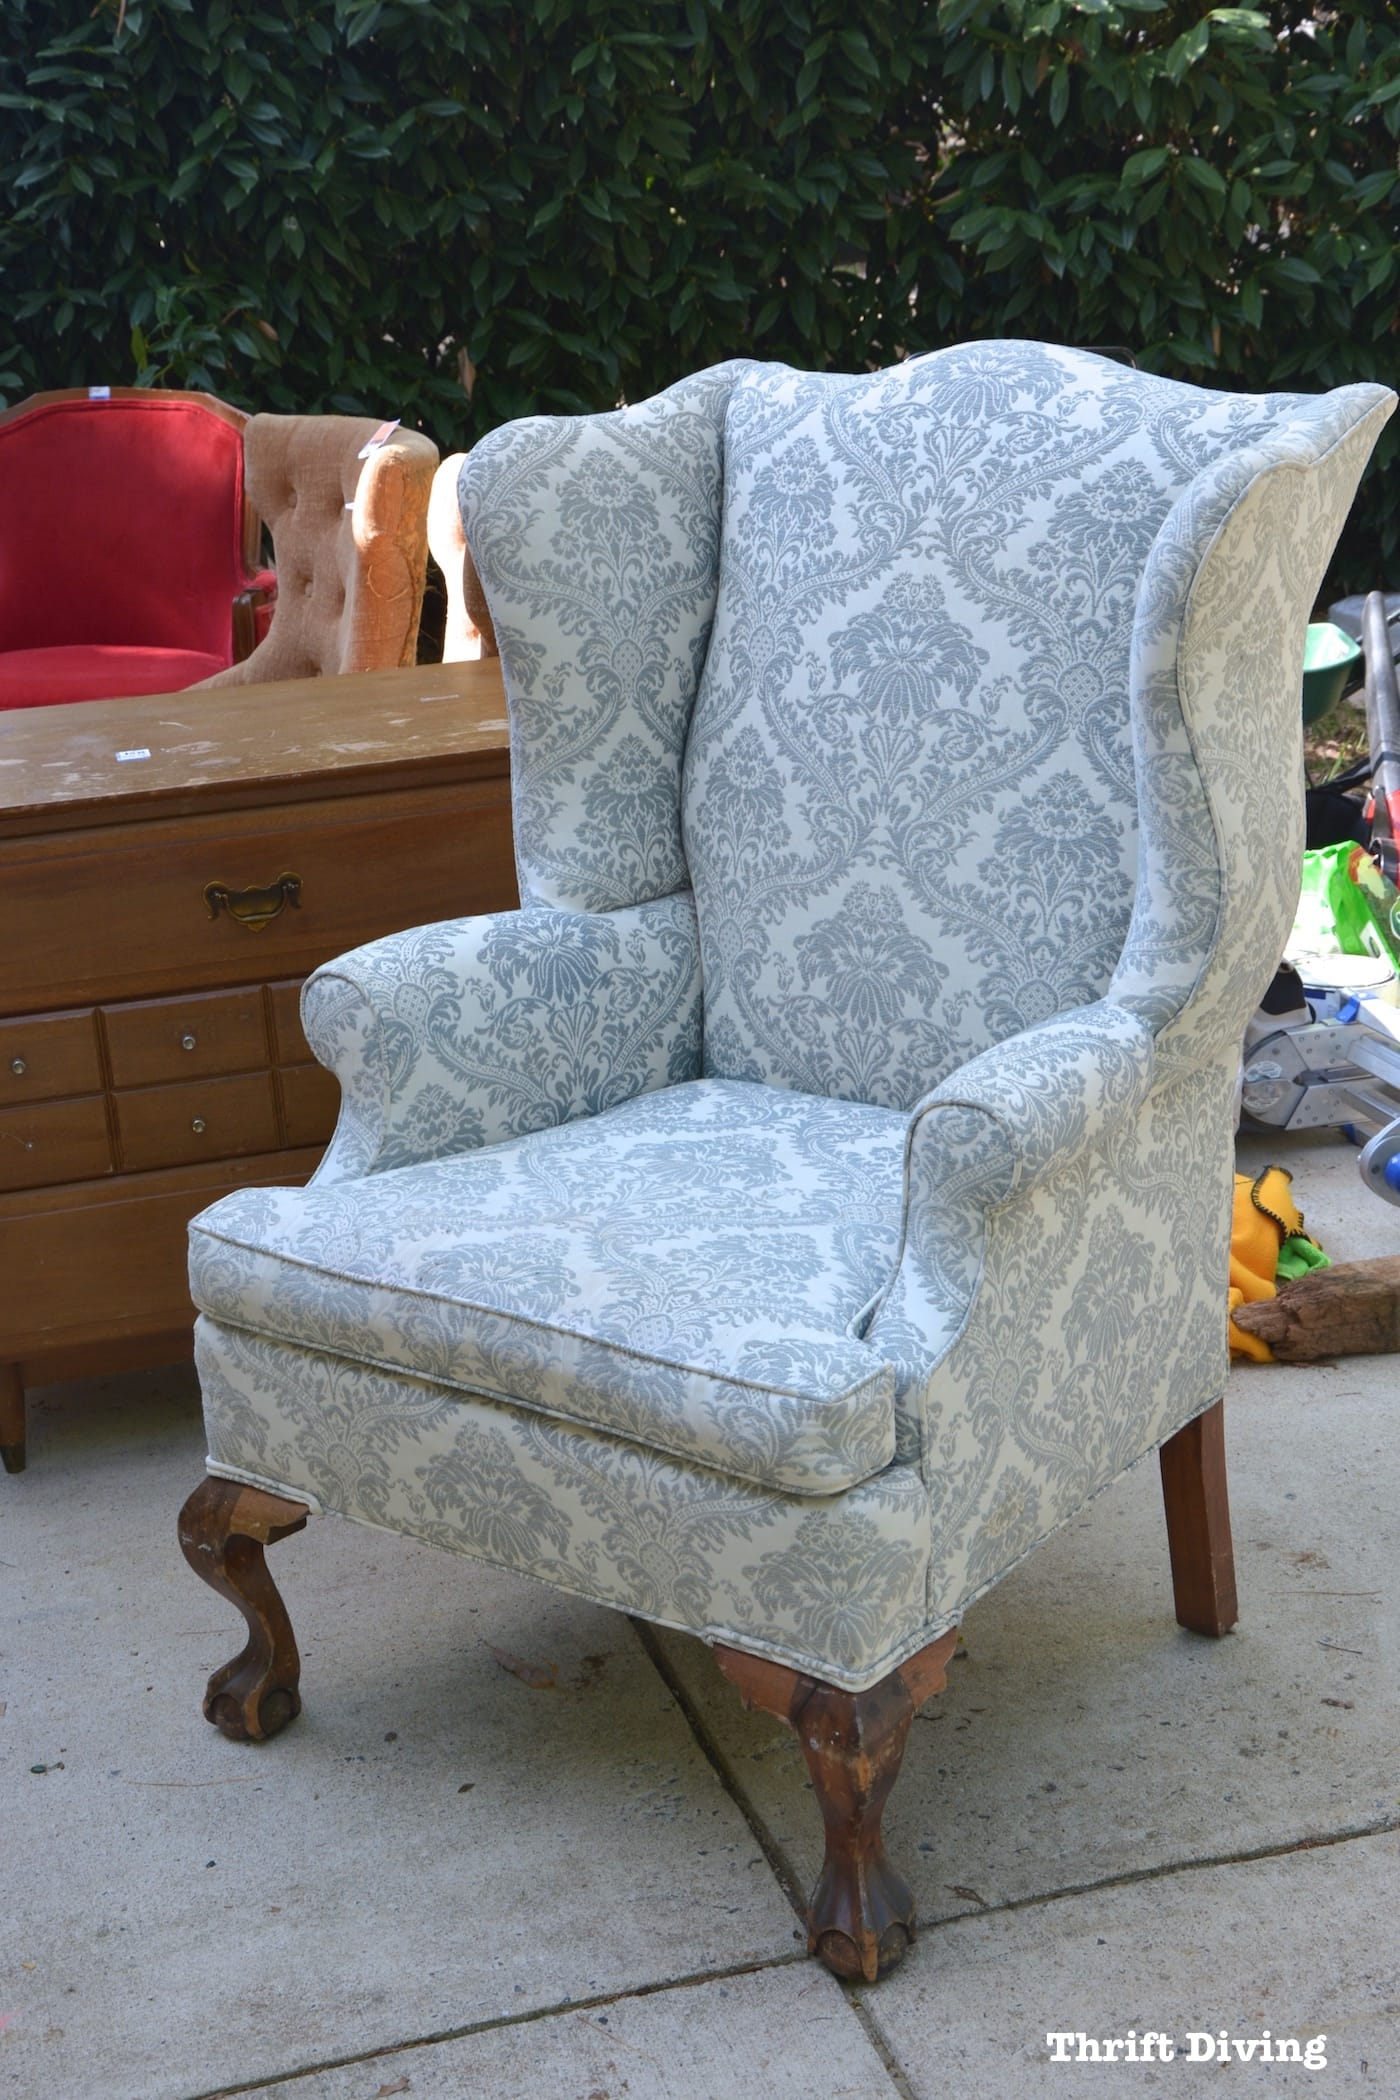 Furniture Reupholstery Near Me Uk How To Reupholster A Wingback Chair A Step By Step Tutorial And Guide